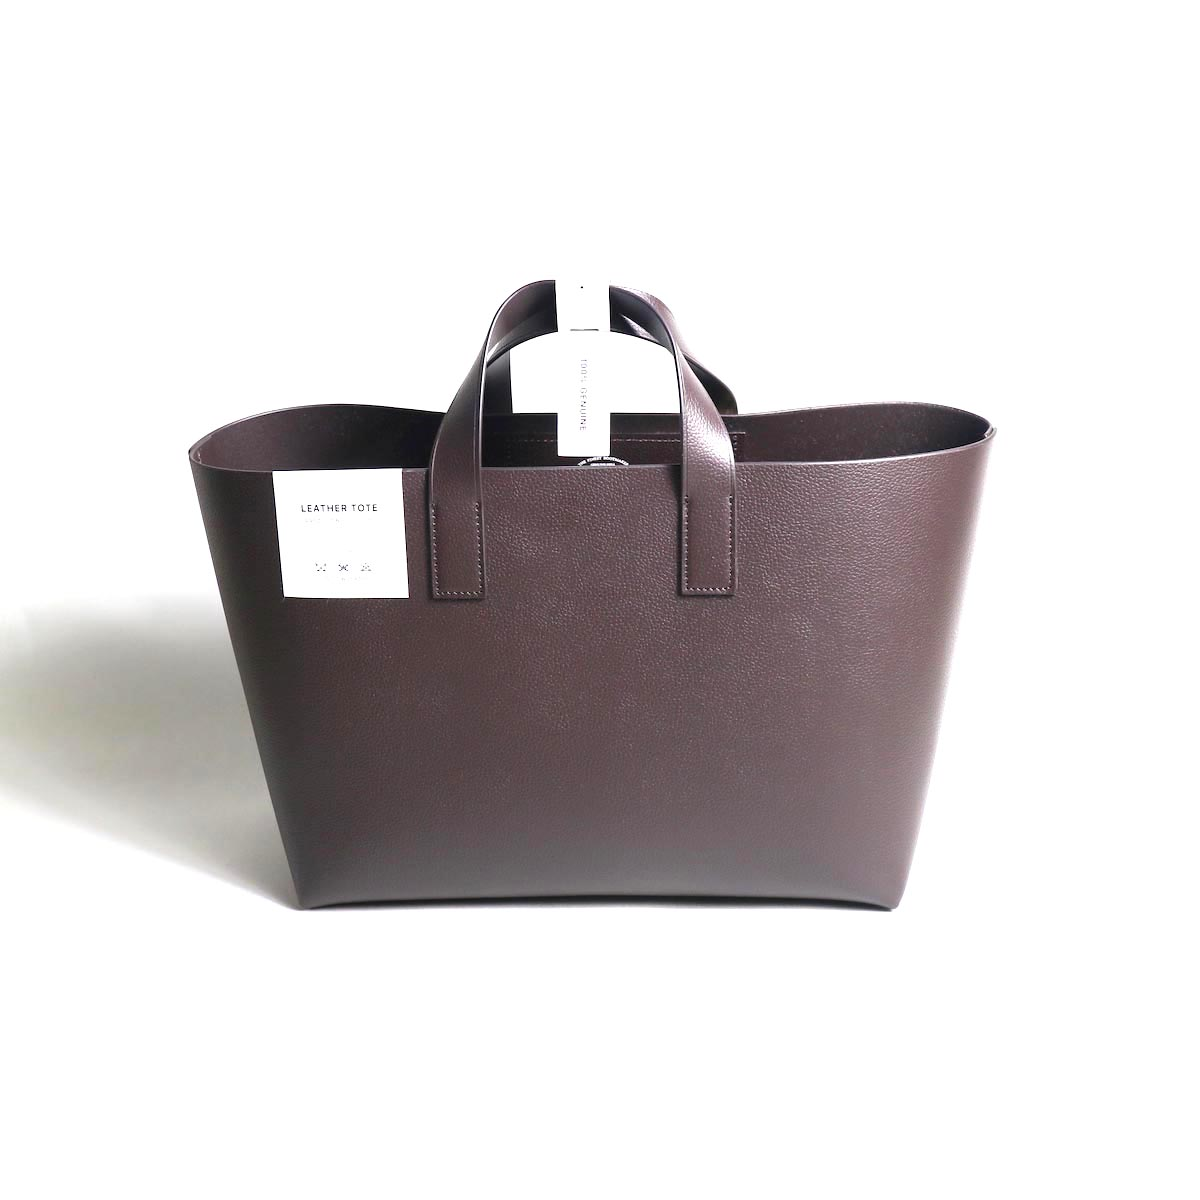 foot the coacher / Leather tote-S (DARK BROWN)正面